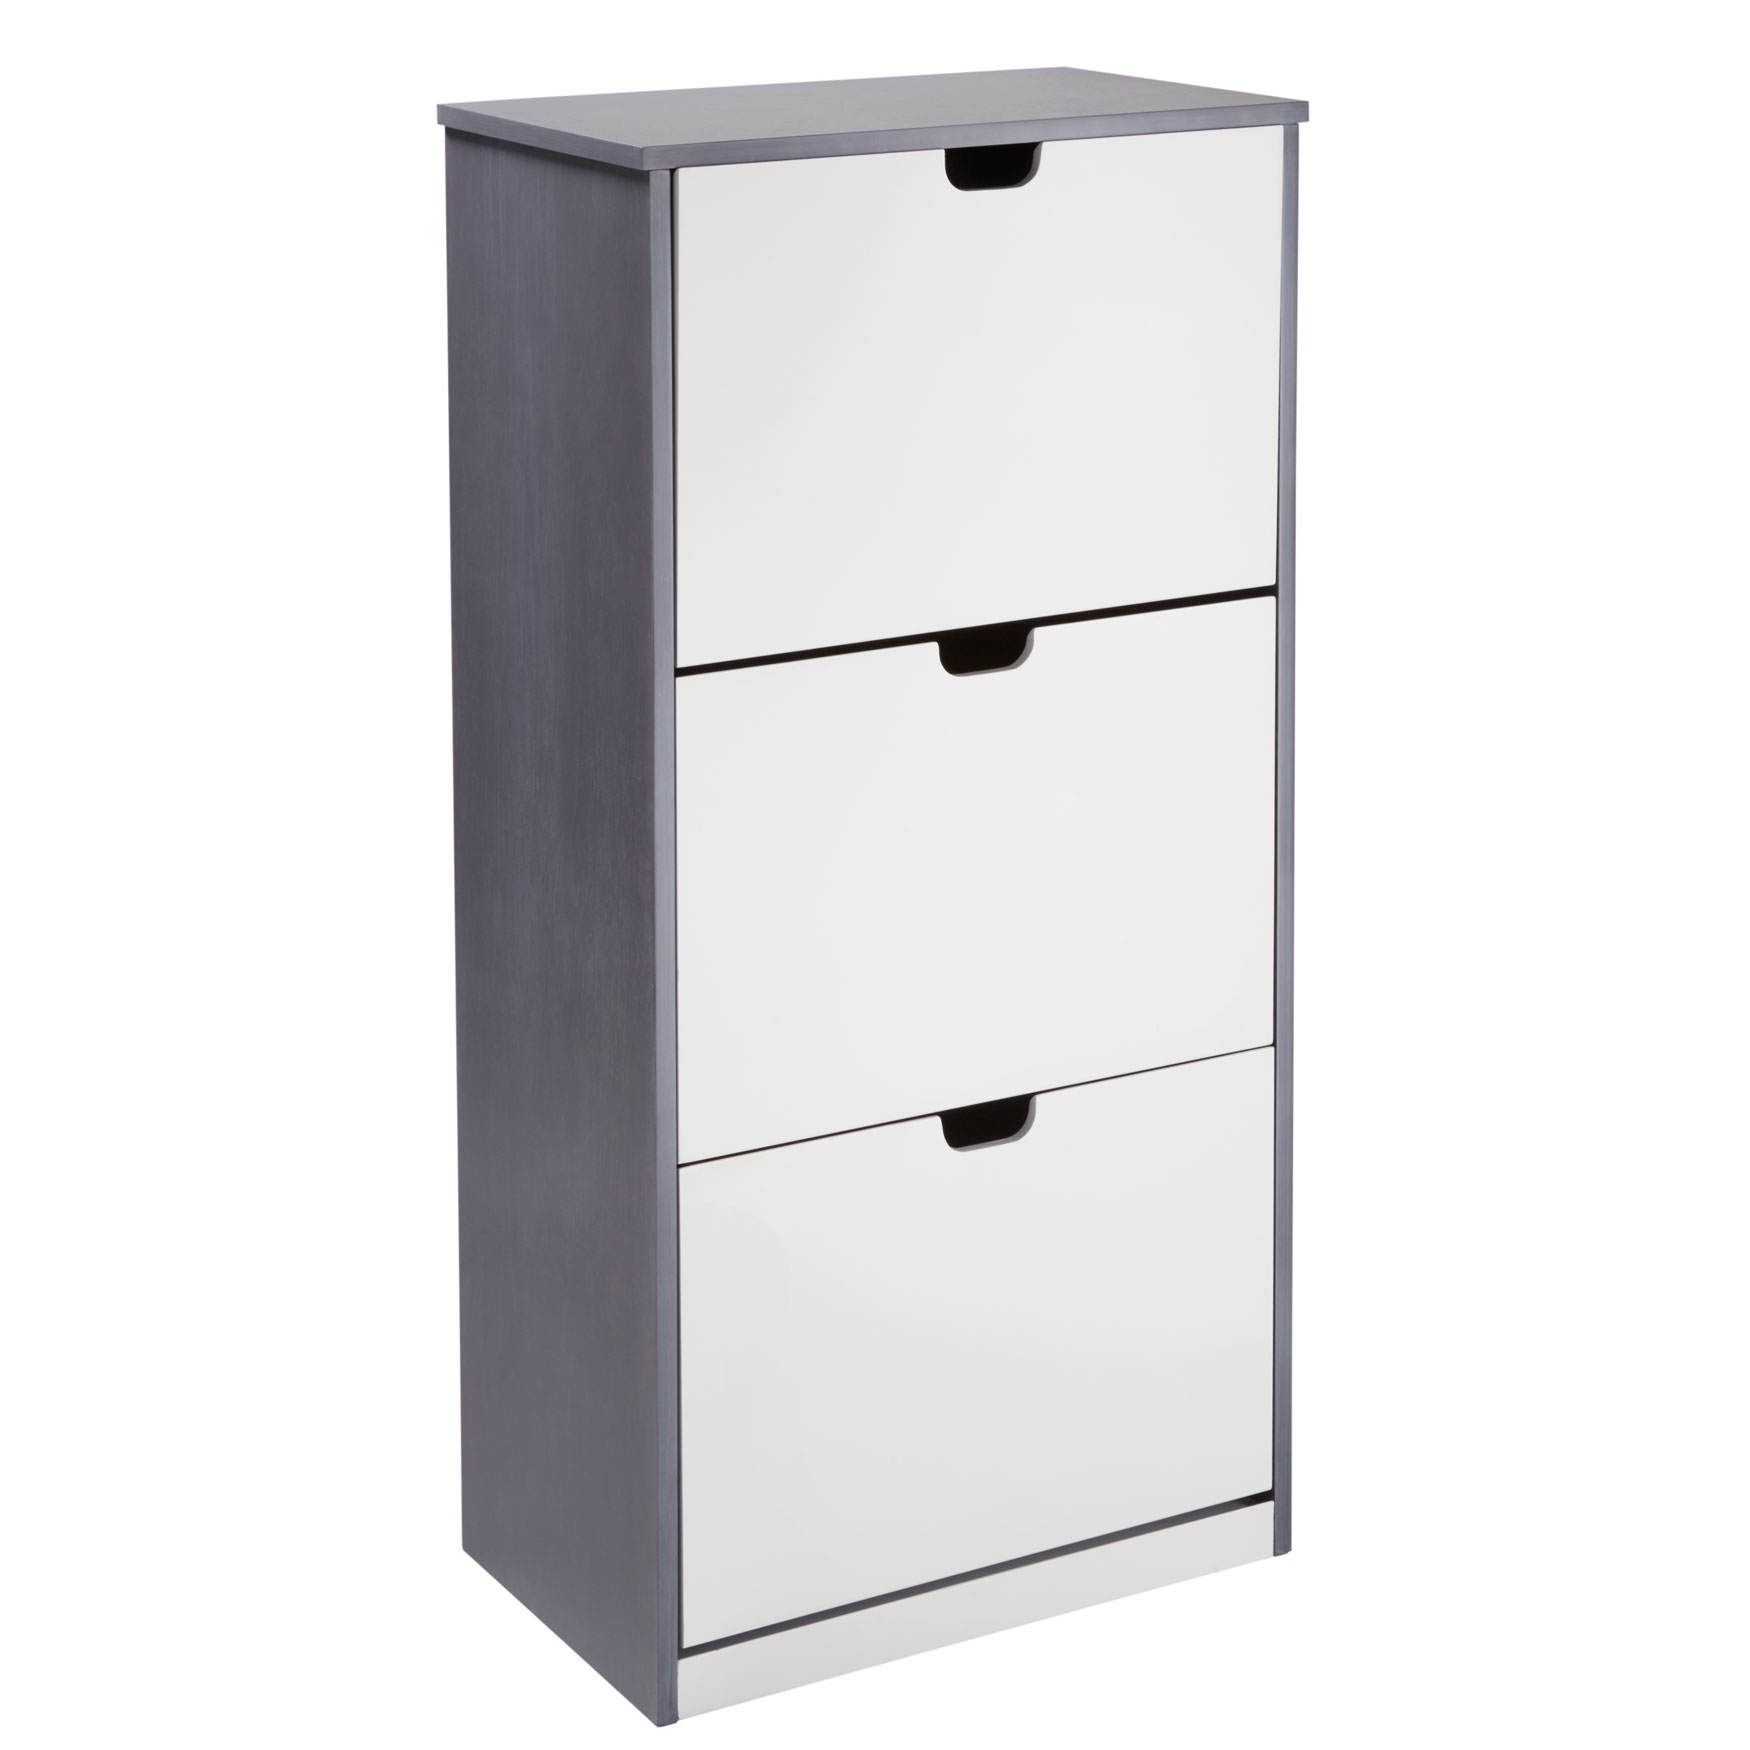 Niko Shoe Cabinet, GRAY WHITE